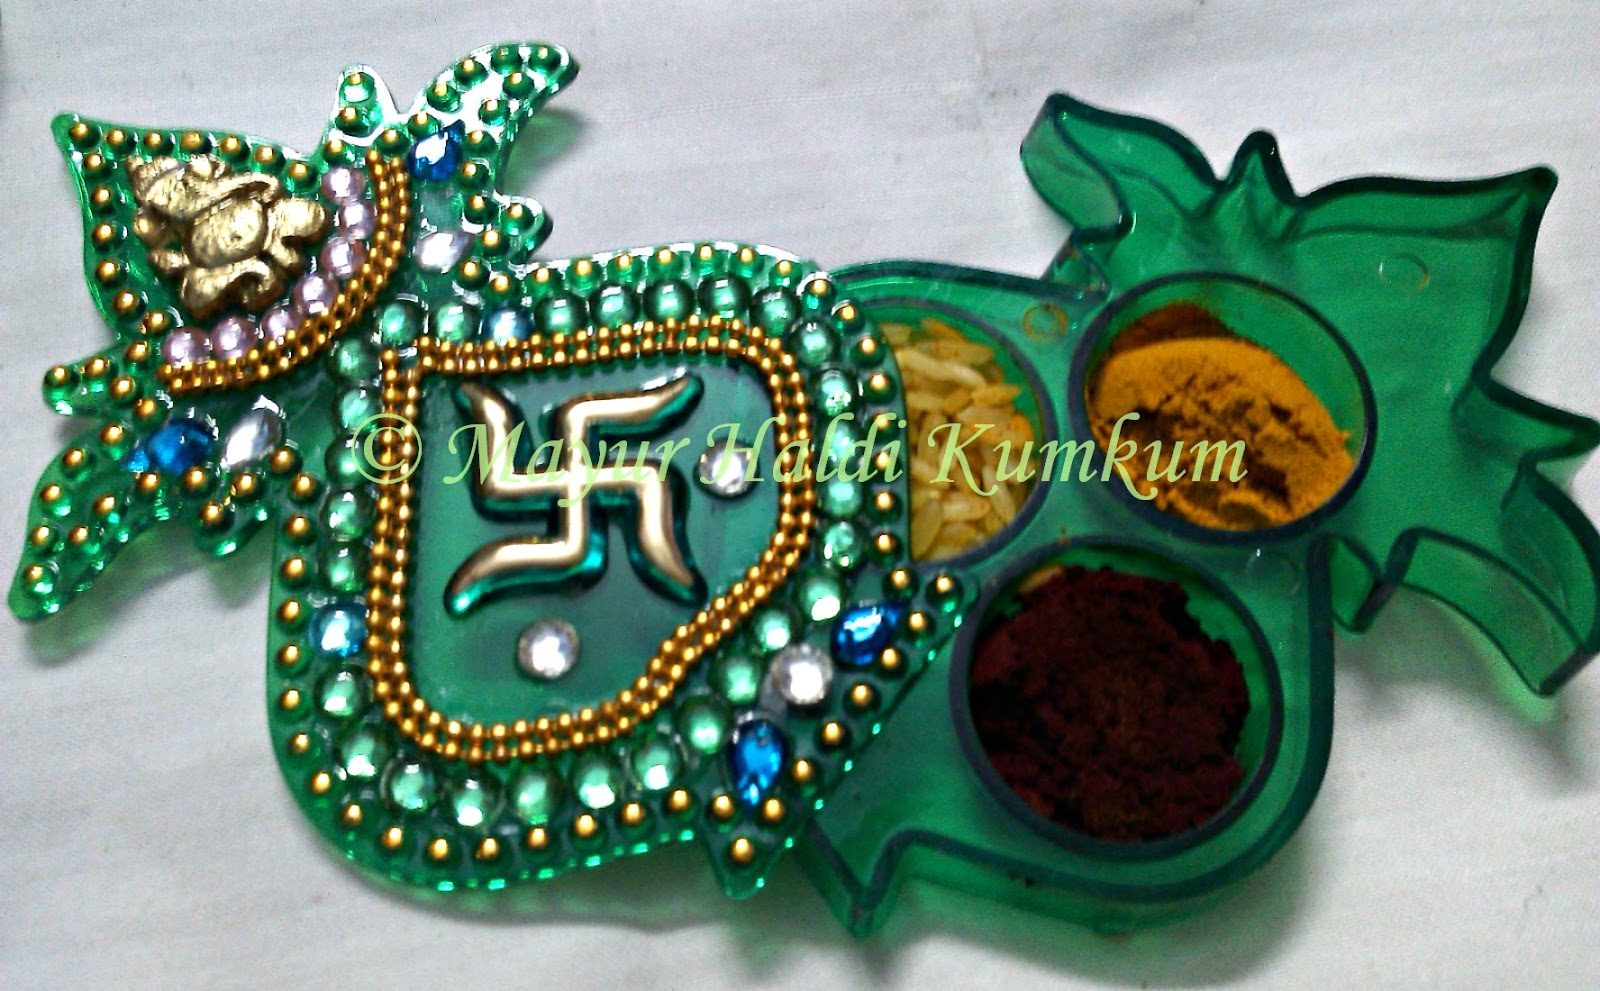 Gruhapravesam gifts 28 images mayur arts crafts 1 1 16 2 1 16 return gifts for - Gifts for gruhapravesam ...